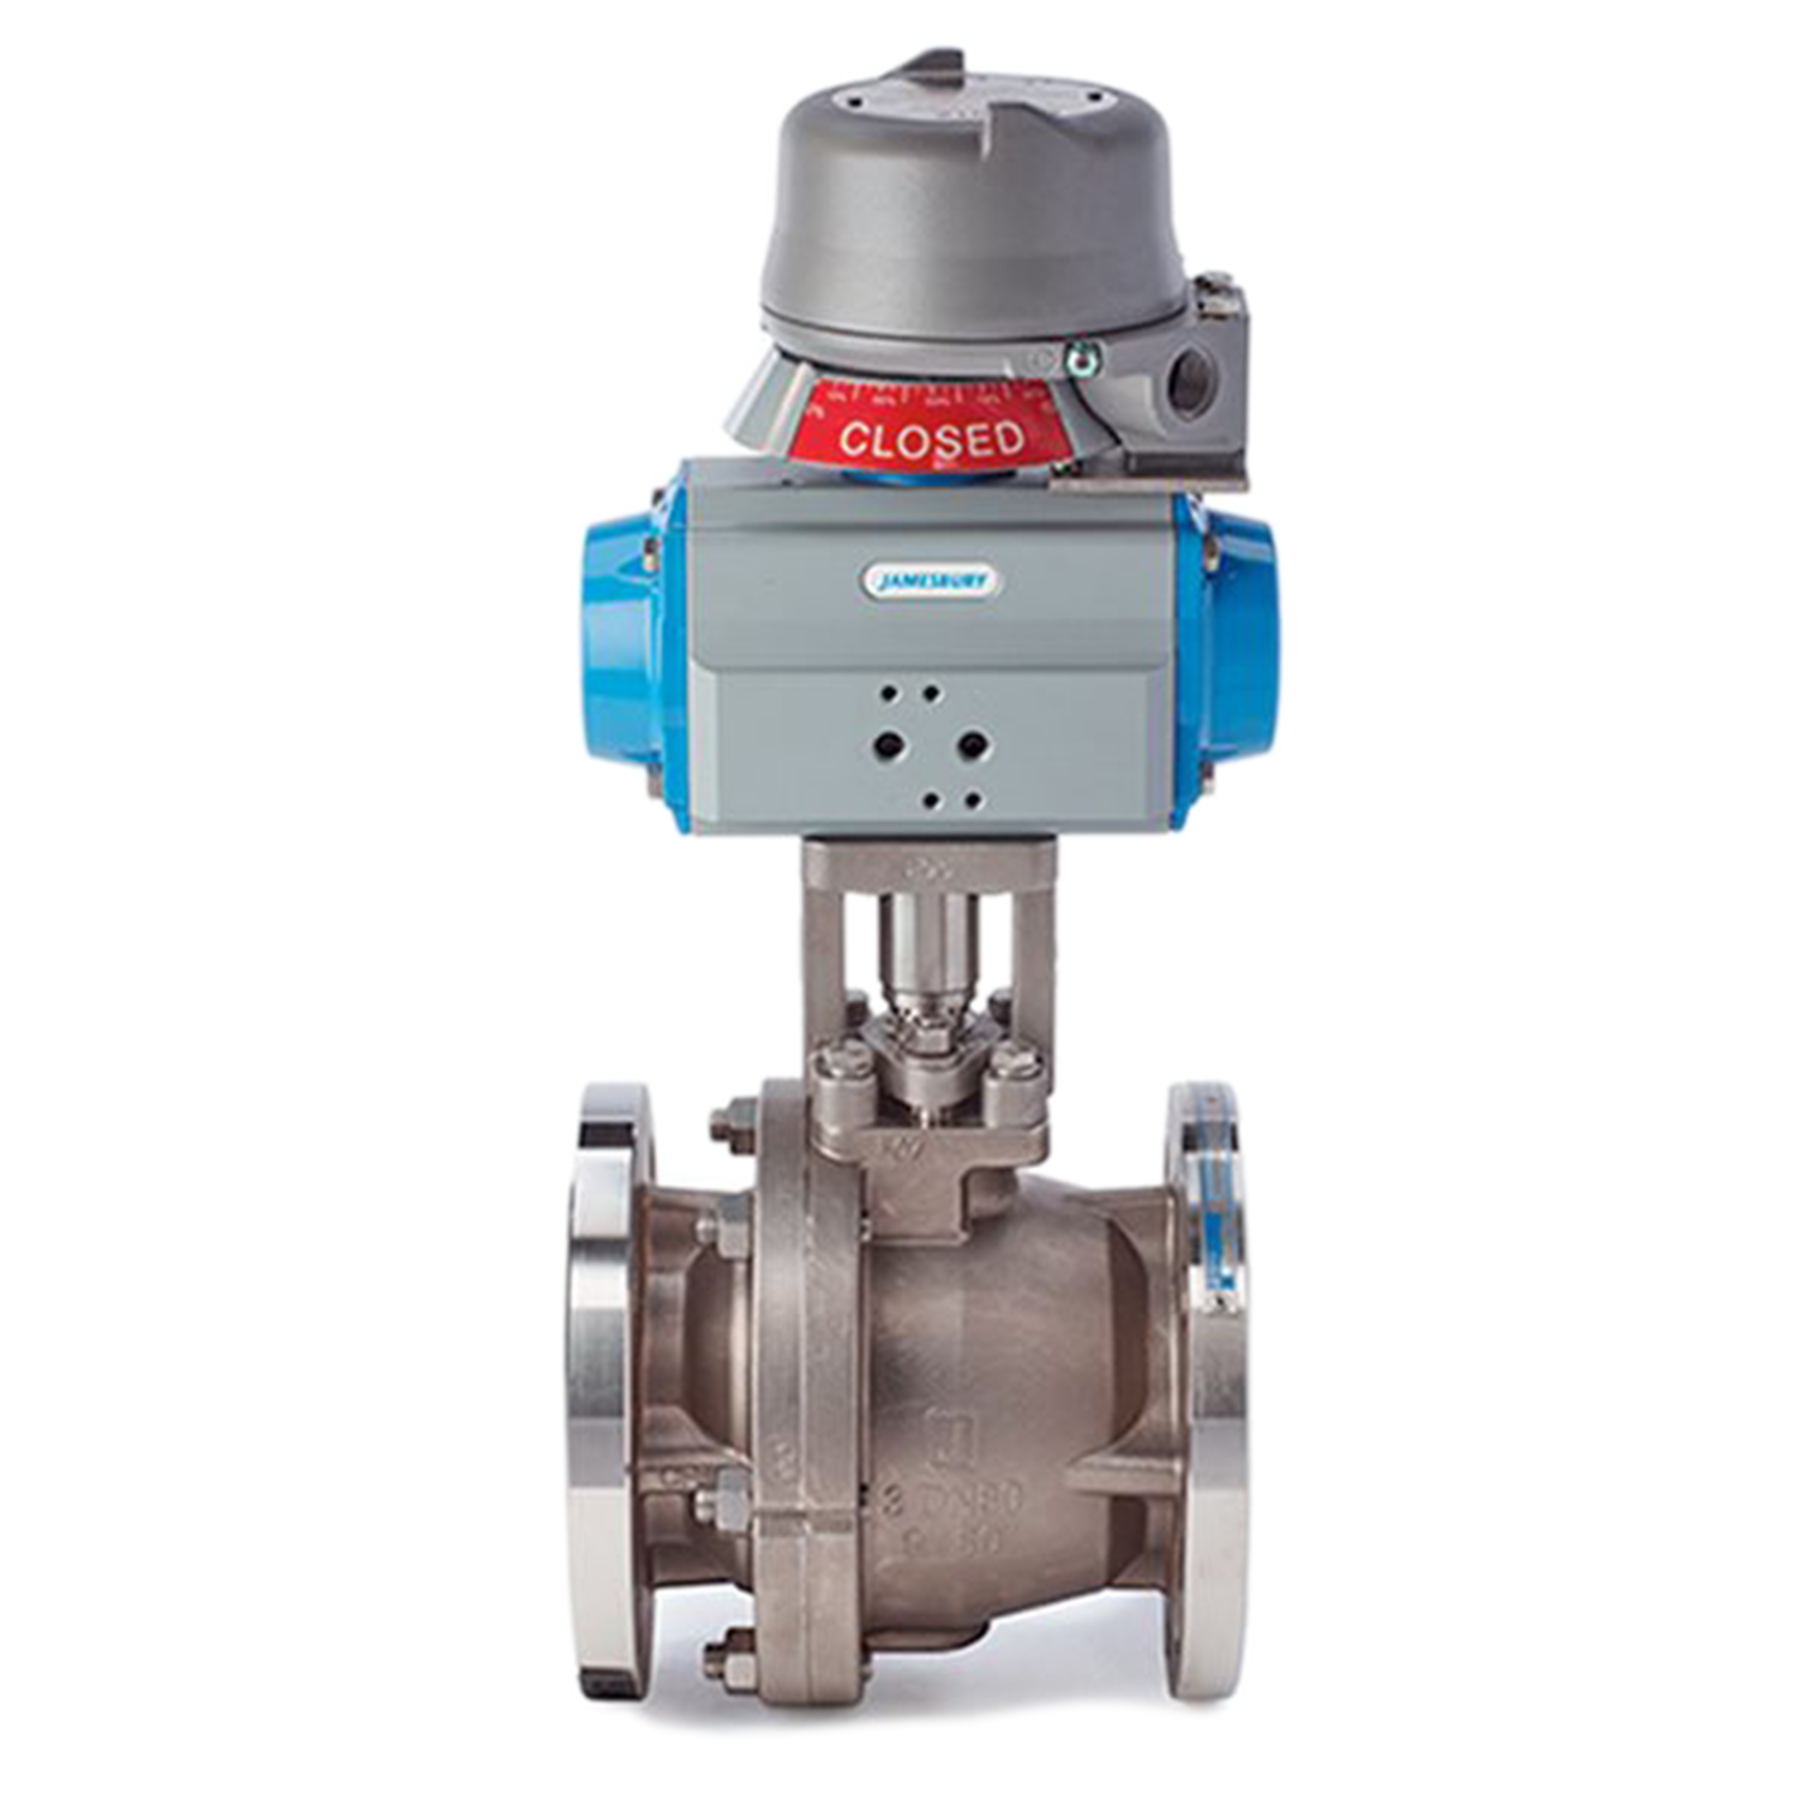 actuated jamesbury series 9000 valve